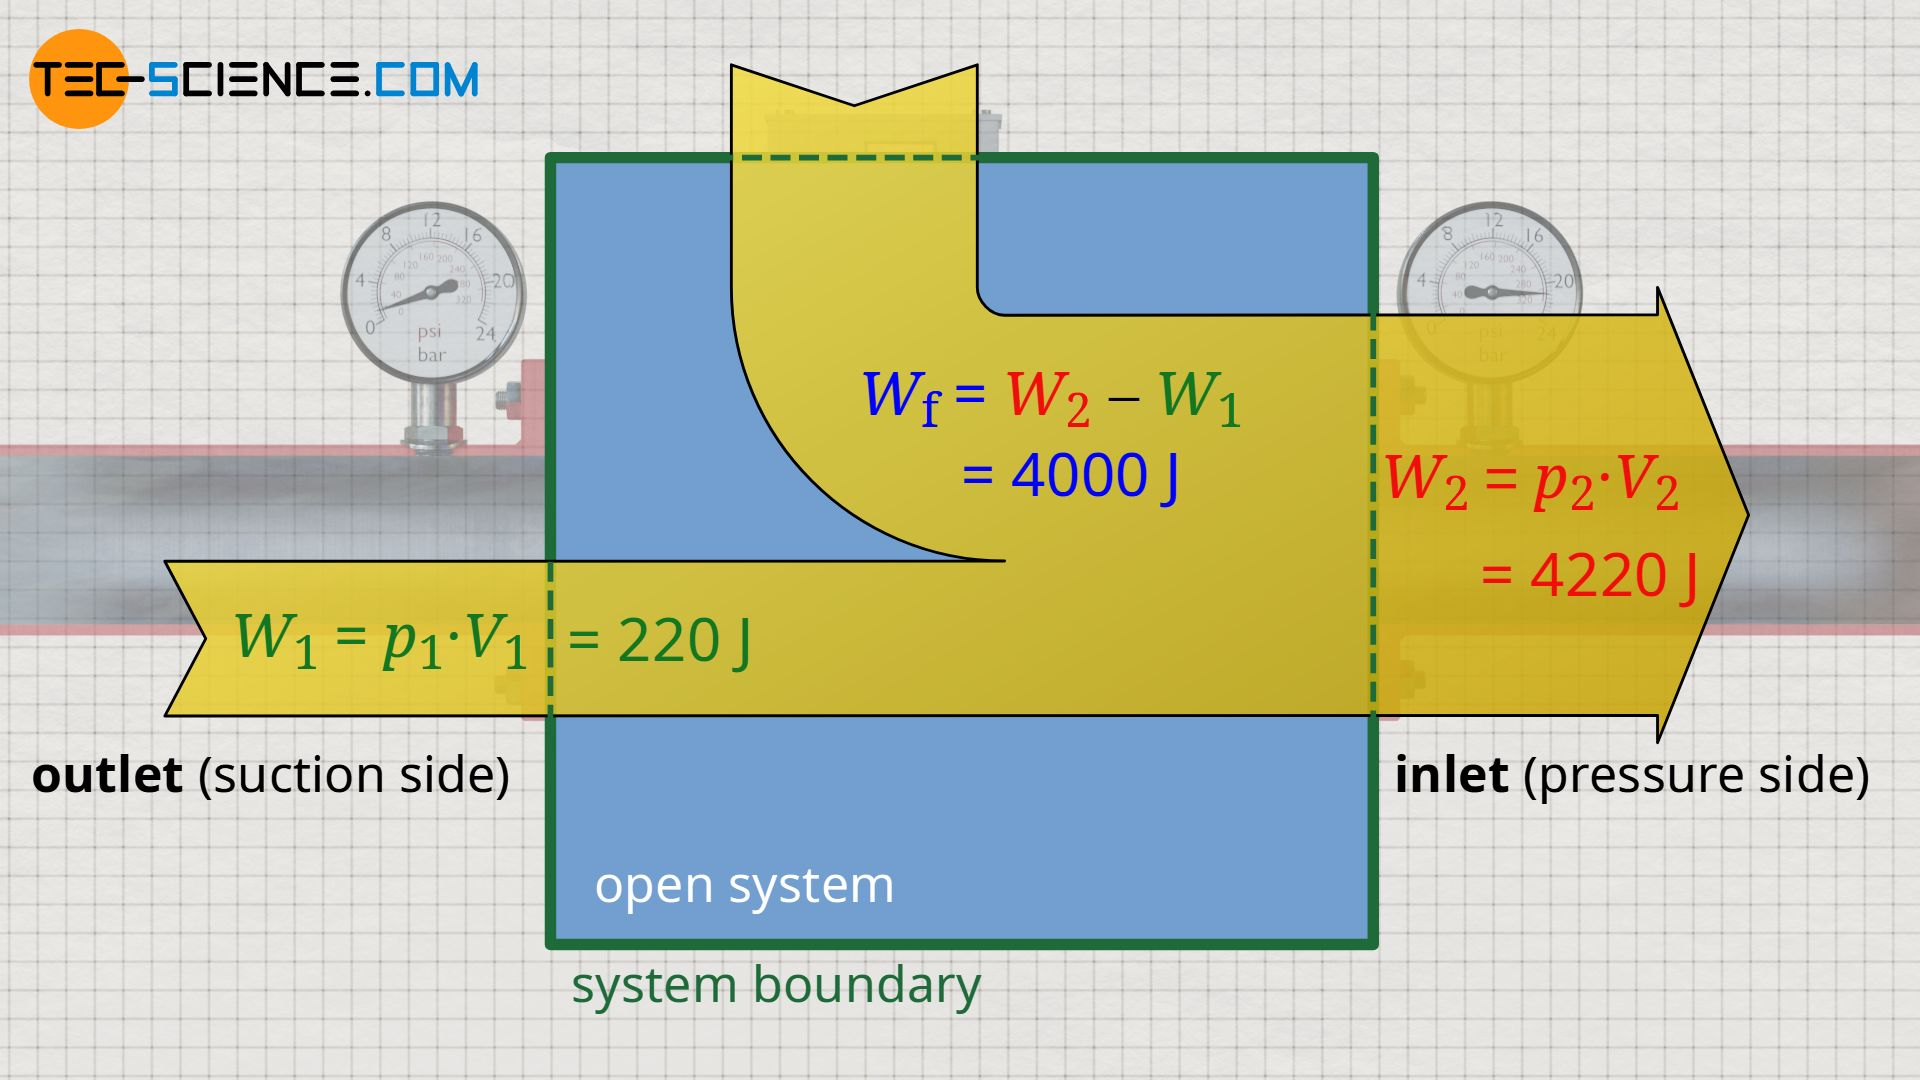 Energy flow diagram for the flow of an incompressible fluid through an open system